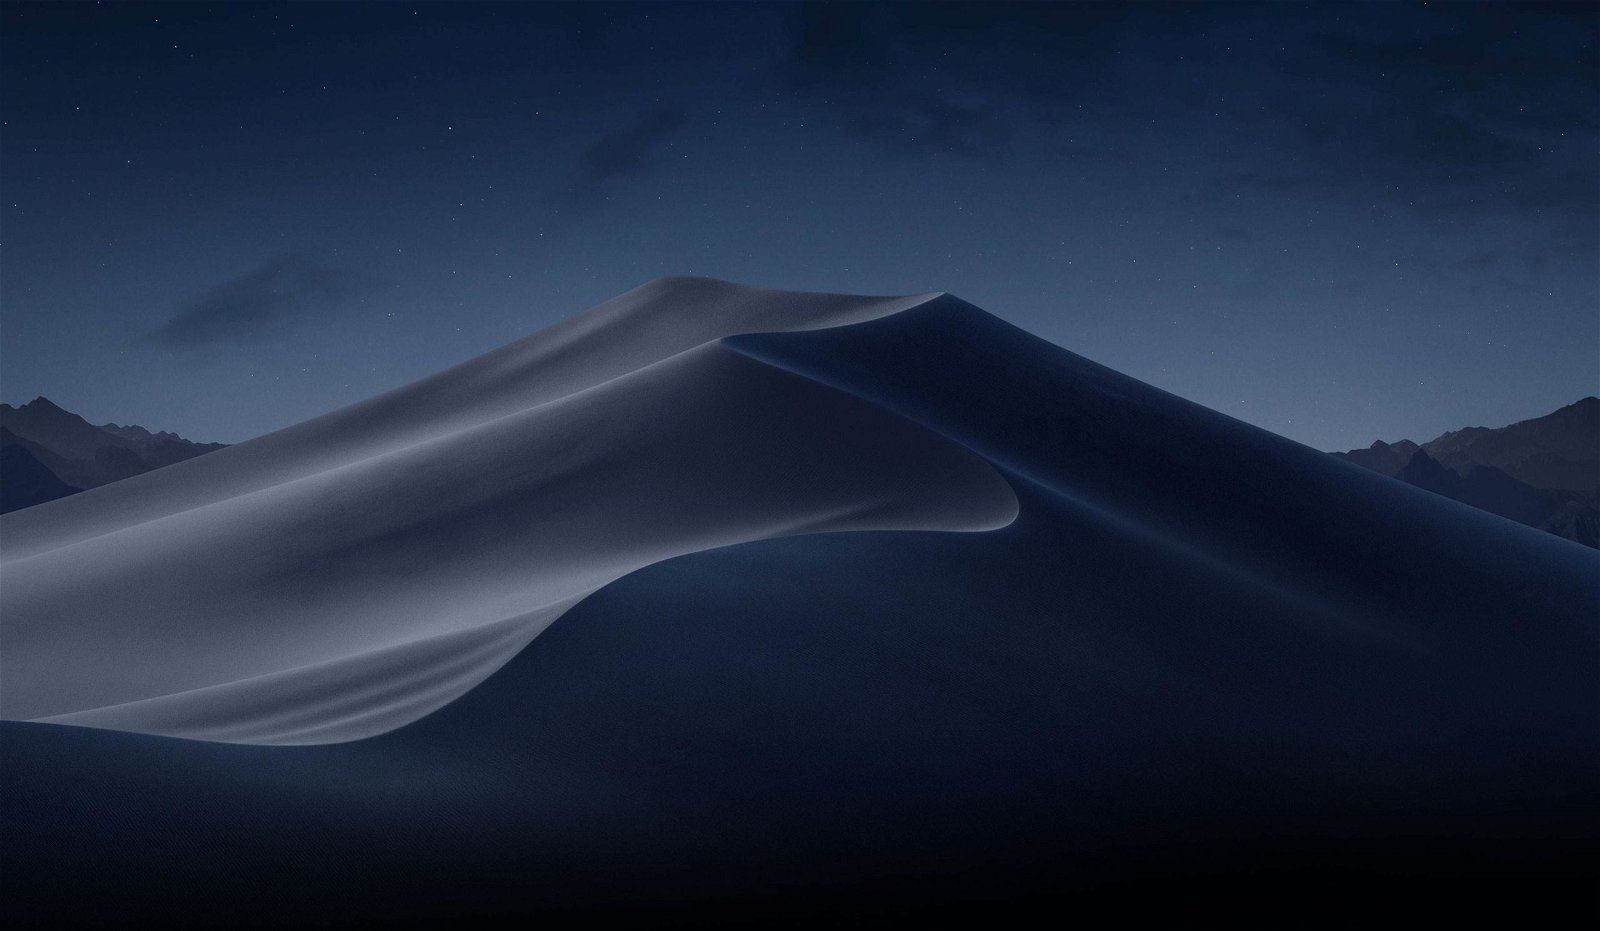 Download macOS Mojave Official Wallpaper 4